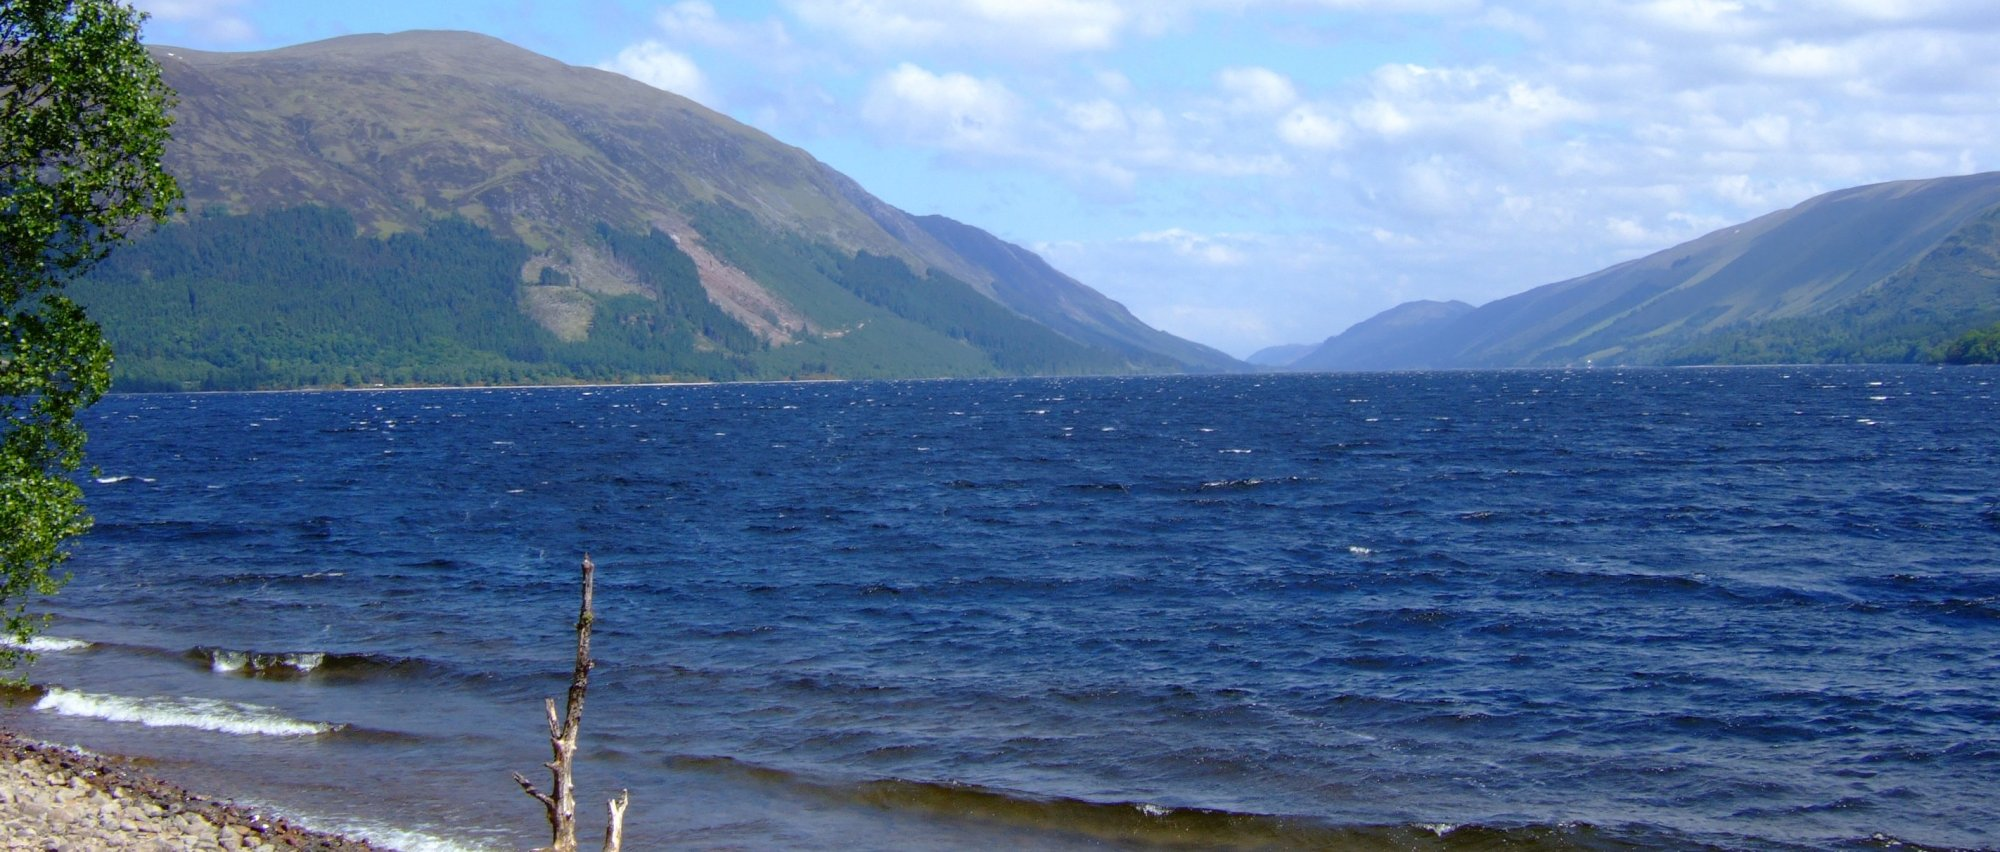 The view down Loch Lochy towards Laggan